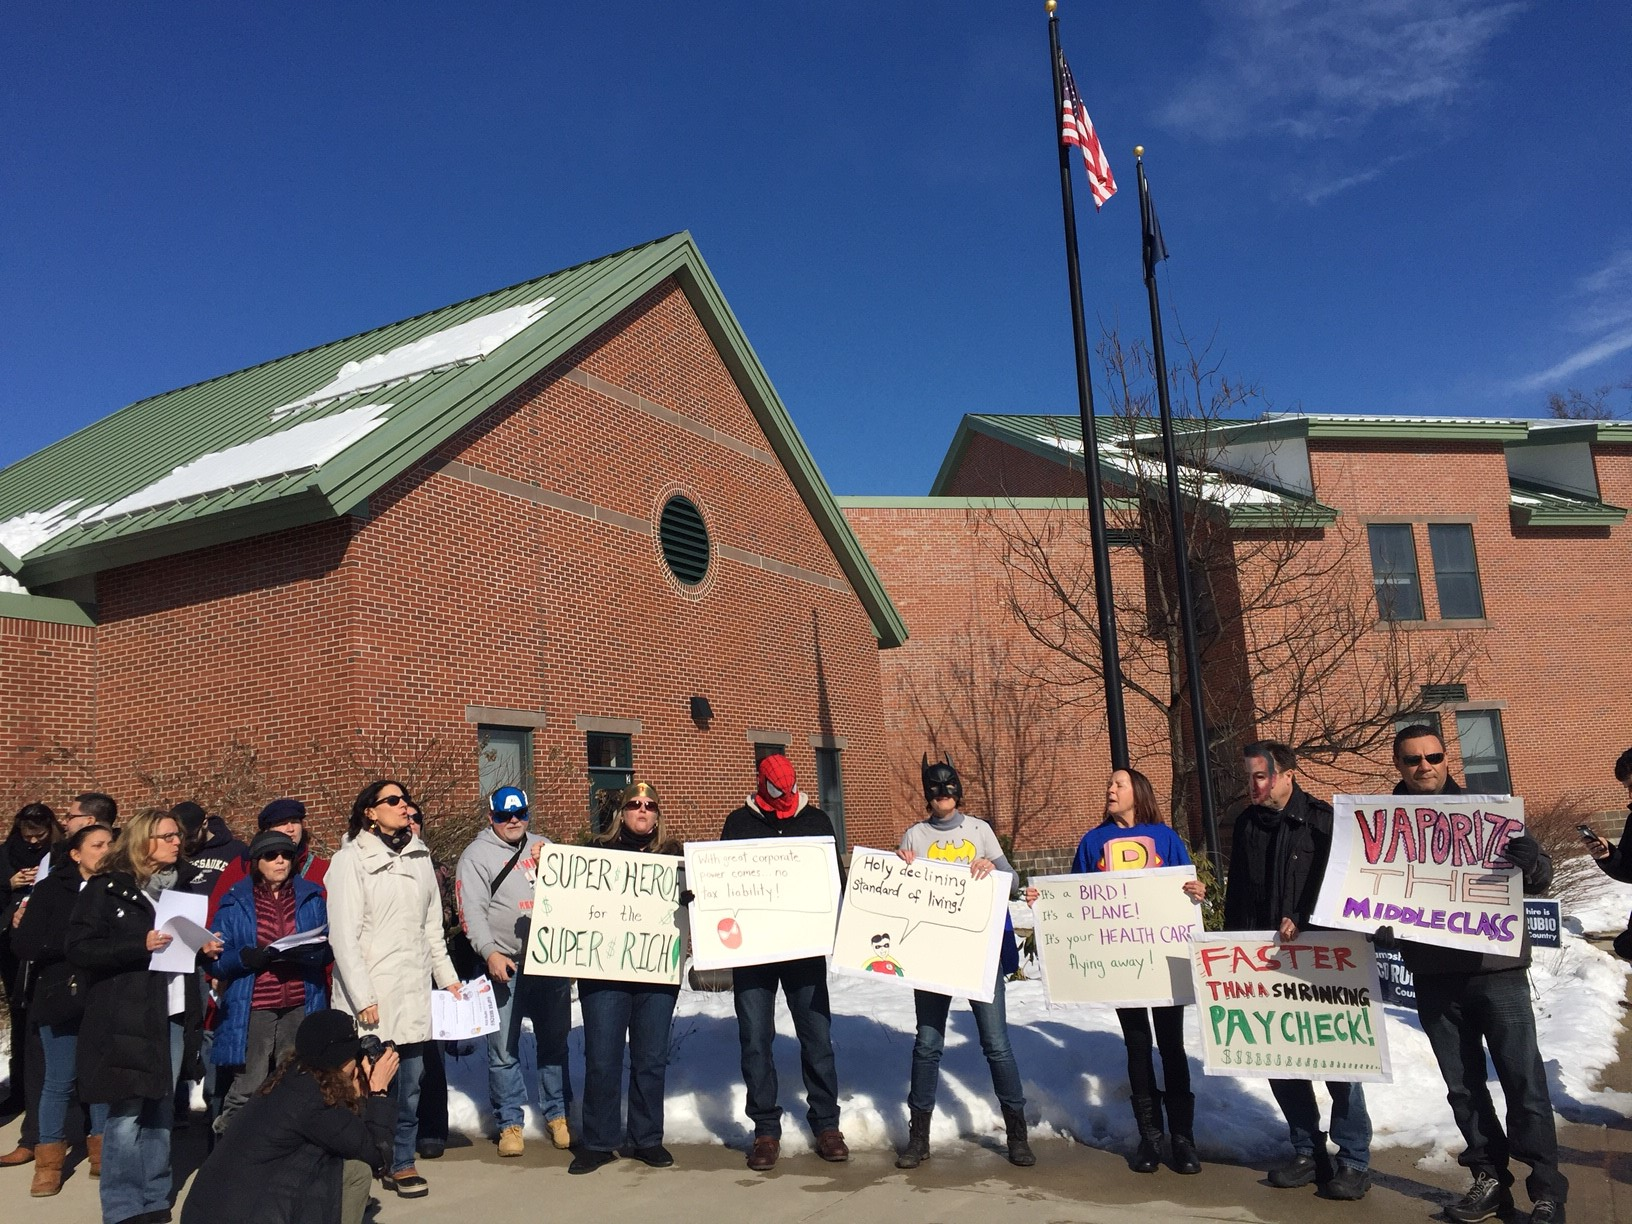 benefits of the new hampshire primary essay Norml's mission is to move public opinion sufficiently to legalize the responsible use of marijuana by adults, and to serve as an advocate for consumers to assure.